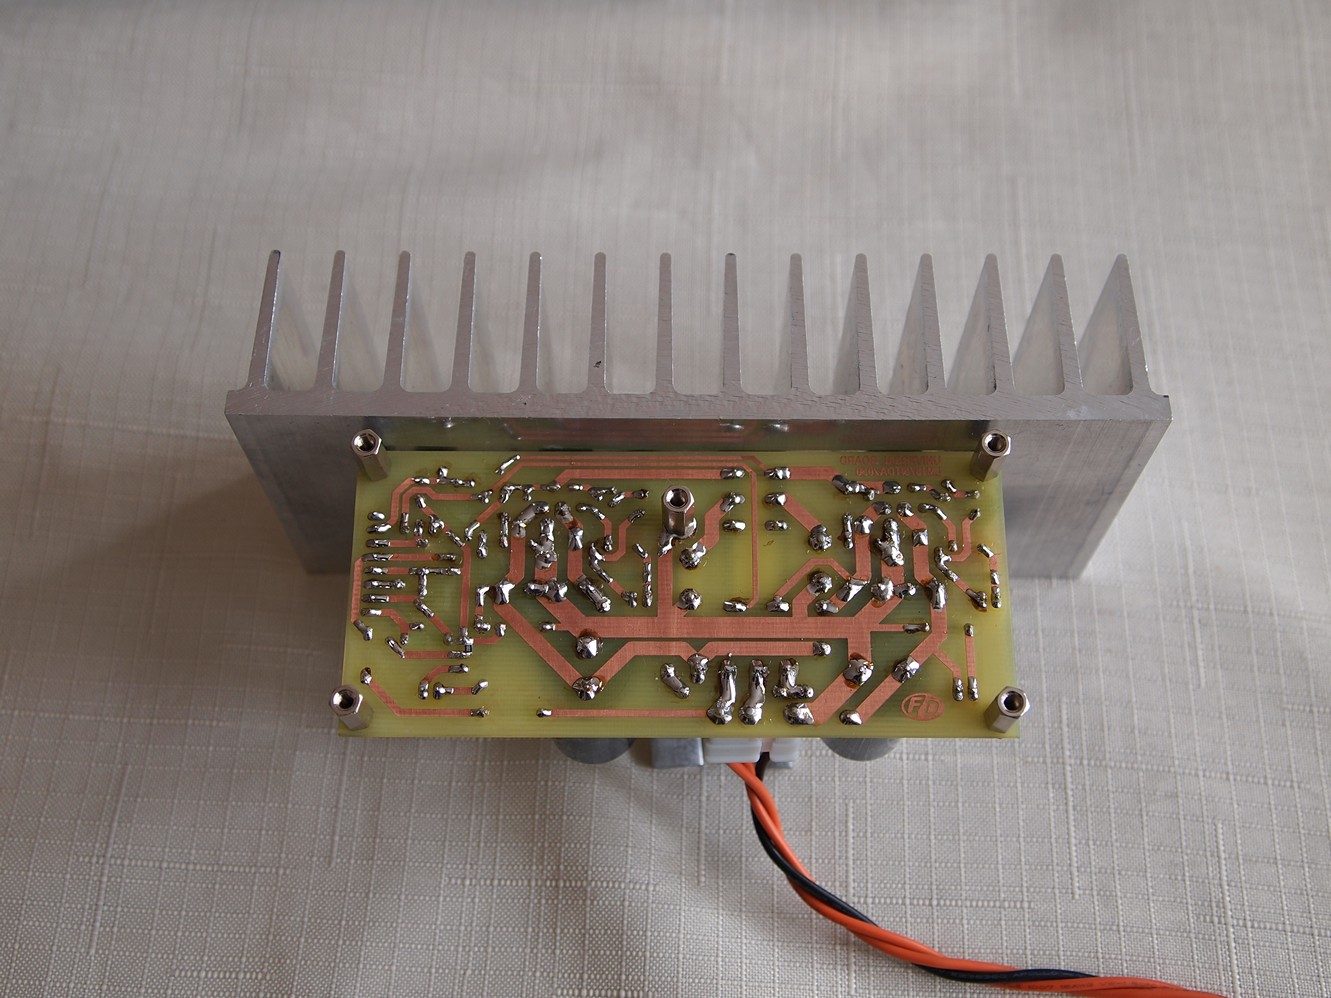 Audio Power Amplifier With Tda2050 Electronics Lab 20w Using Lm1875 Electronic Circuits And Diagram Photos